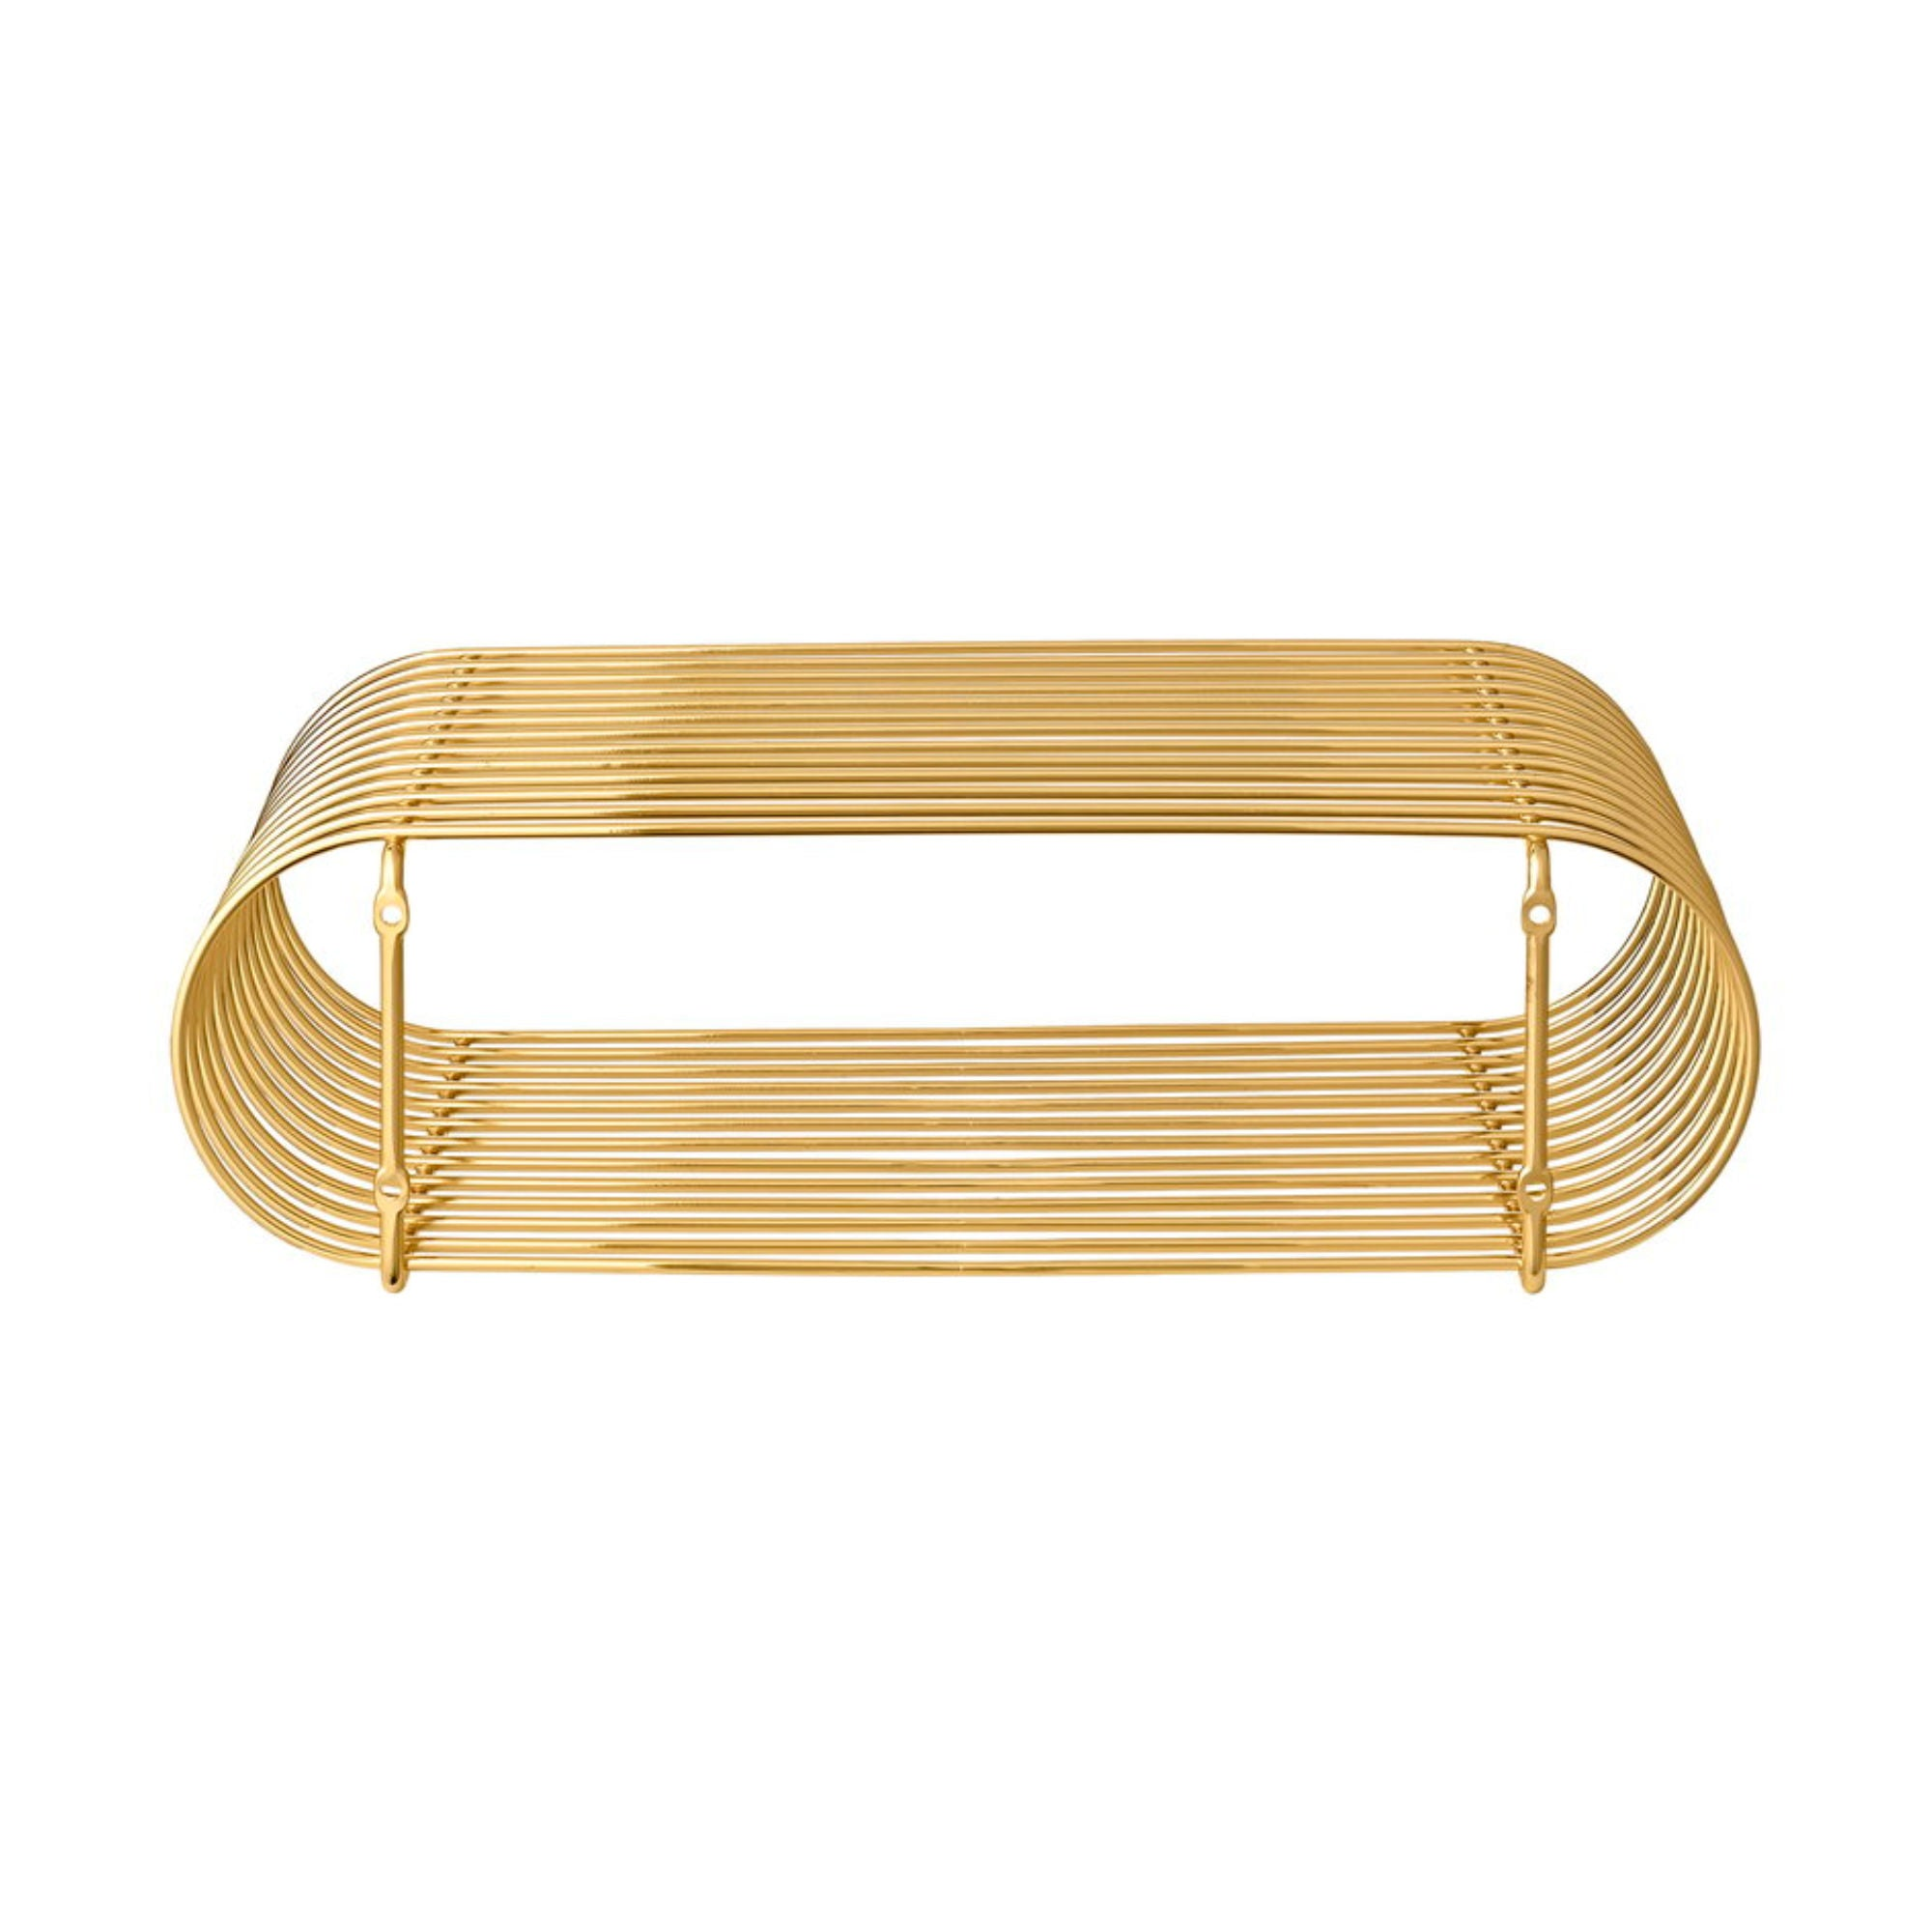 AYTM Curva Shelf , Gold